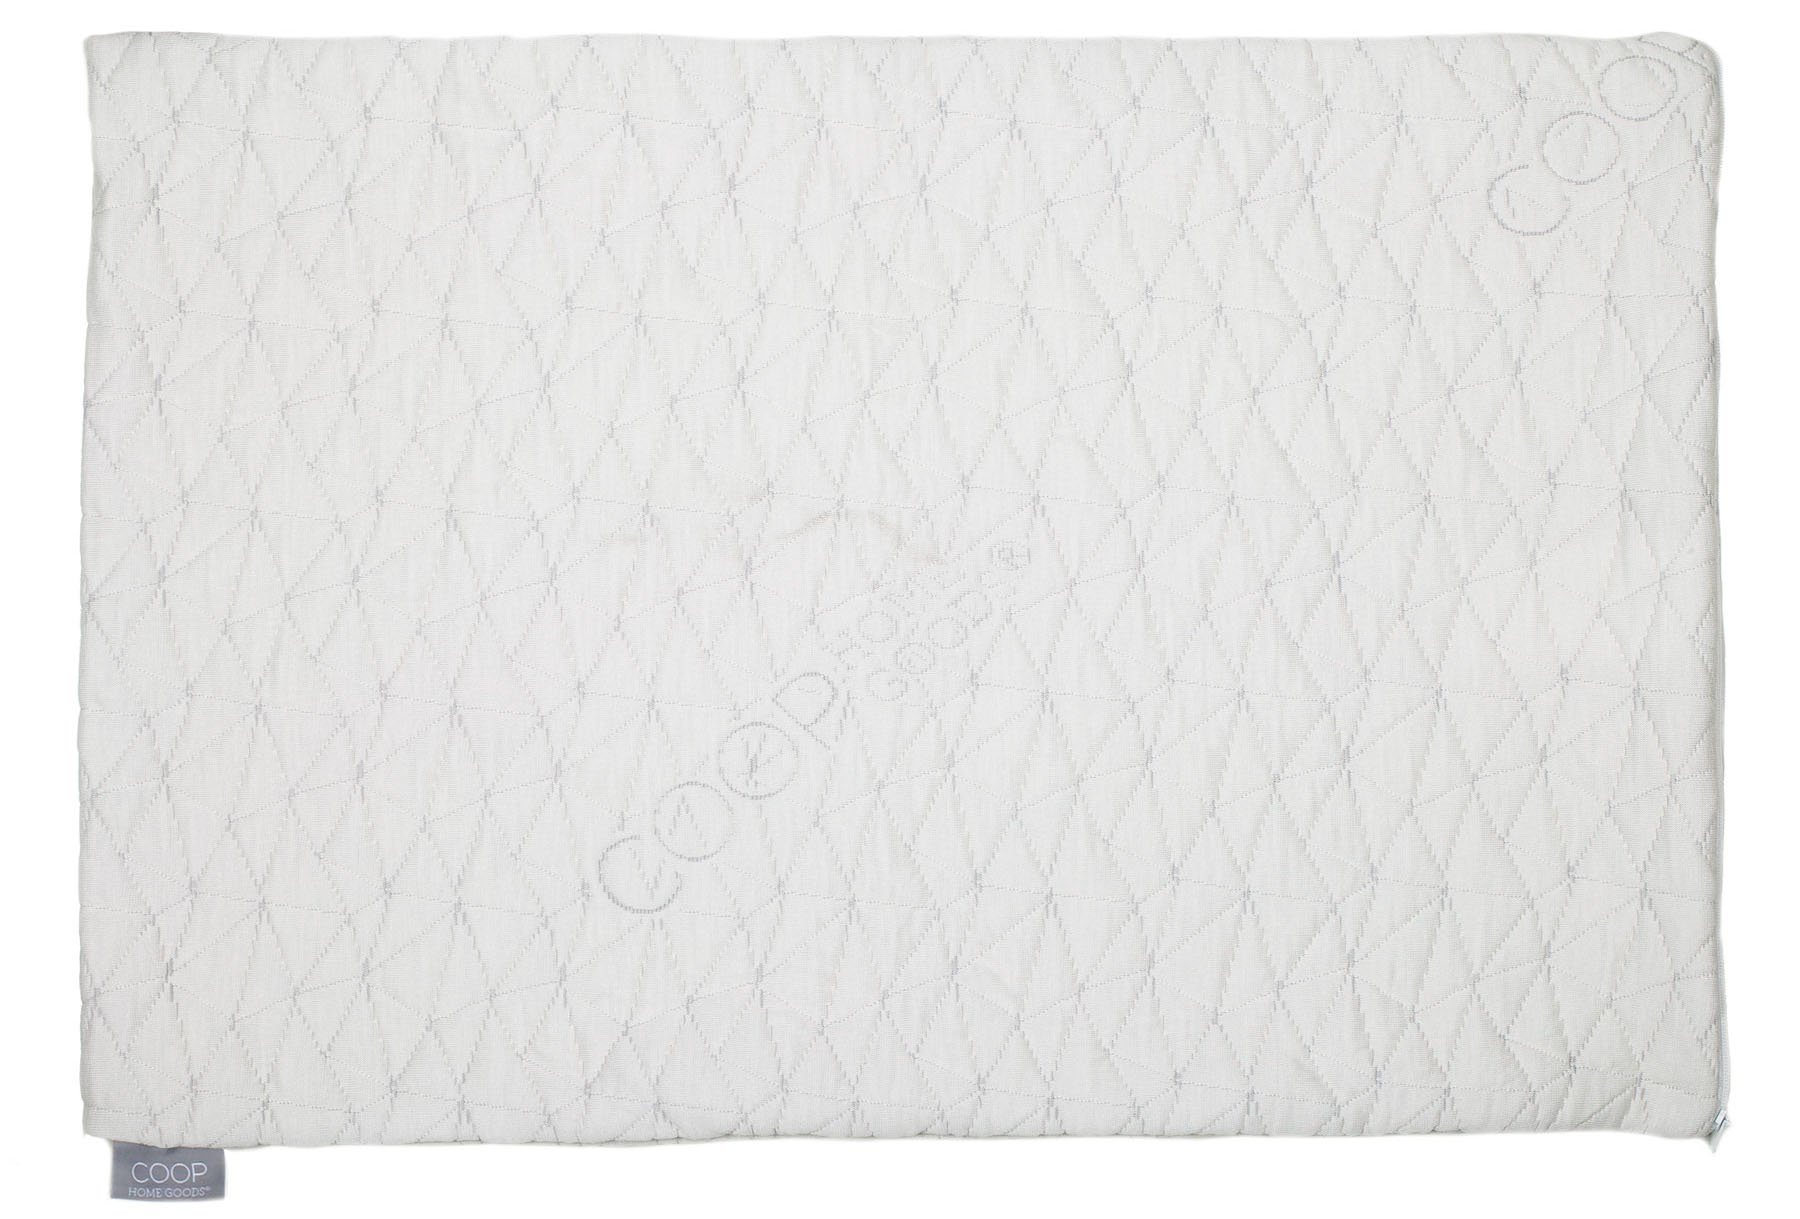 Coop Home Goods - Single QUEEN Removable Pillowcase - Bamboo Derived Viscose and Polyester Blend with Zipper Closure - Made in USA